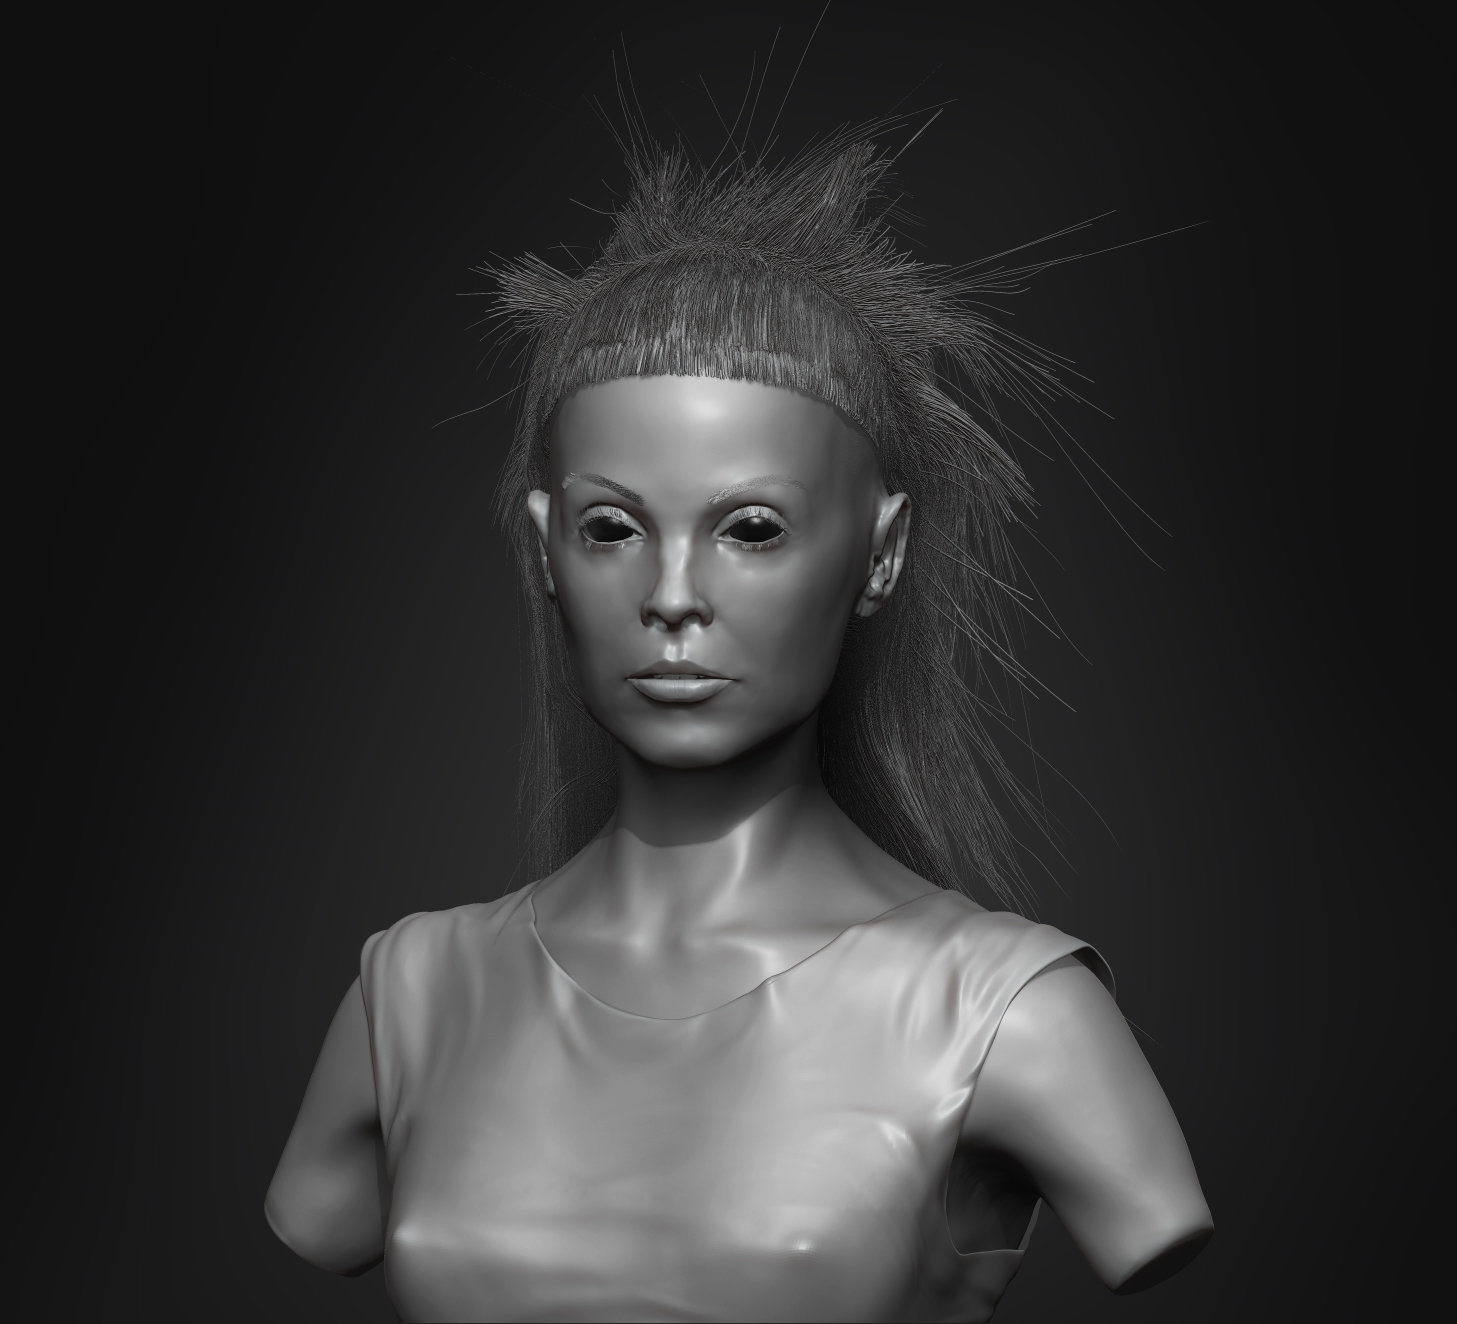 Pic Yolandi Visser nudes (63 foto and video), Sexy, Hot, Boobs, see through 2018